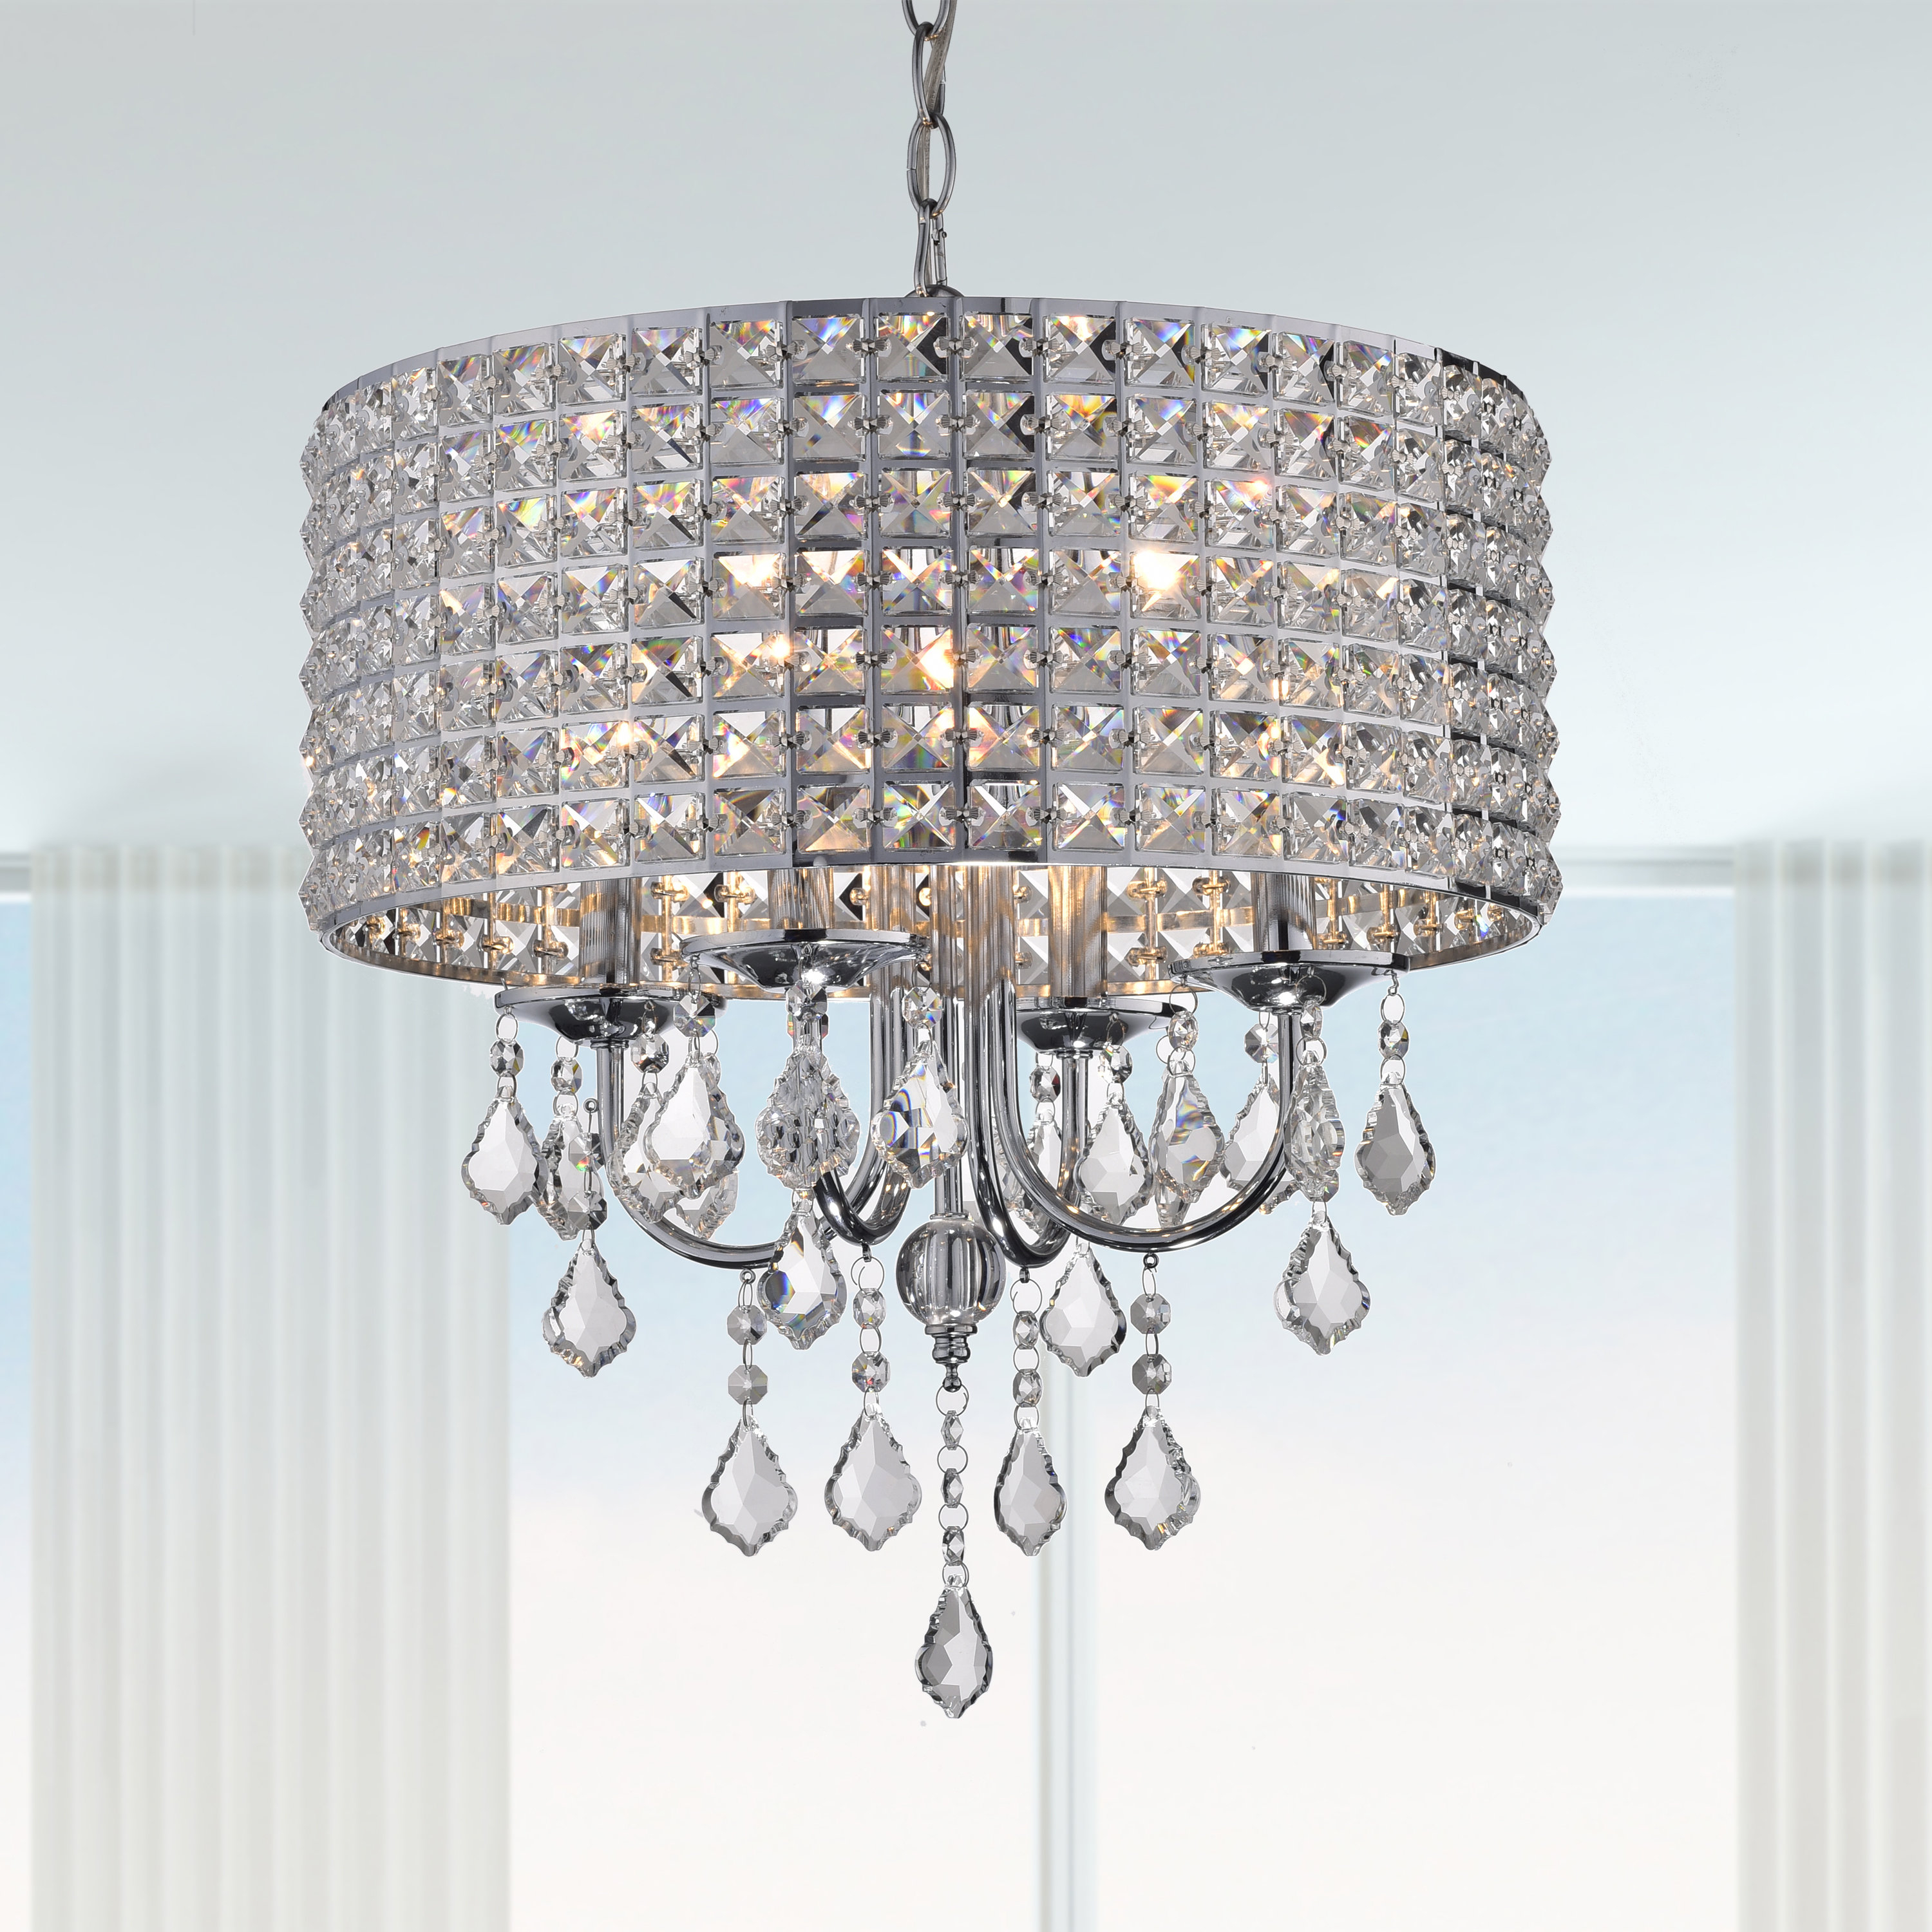 Albano 4 Light Crystal Chandelier Throughout Well Known Aldgate 4 Light Crystal Chandeliers (View 1 of 25)